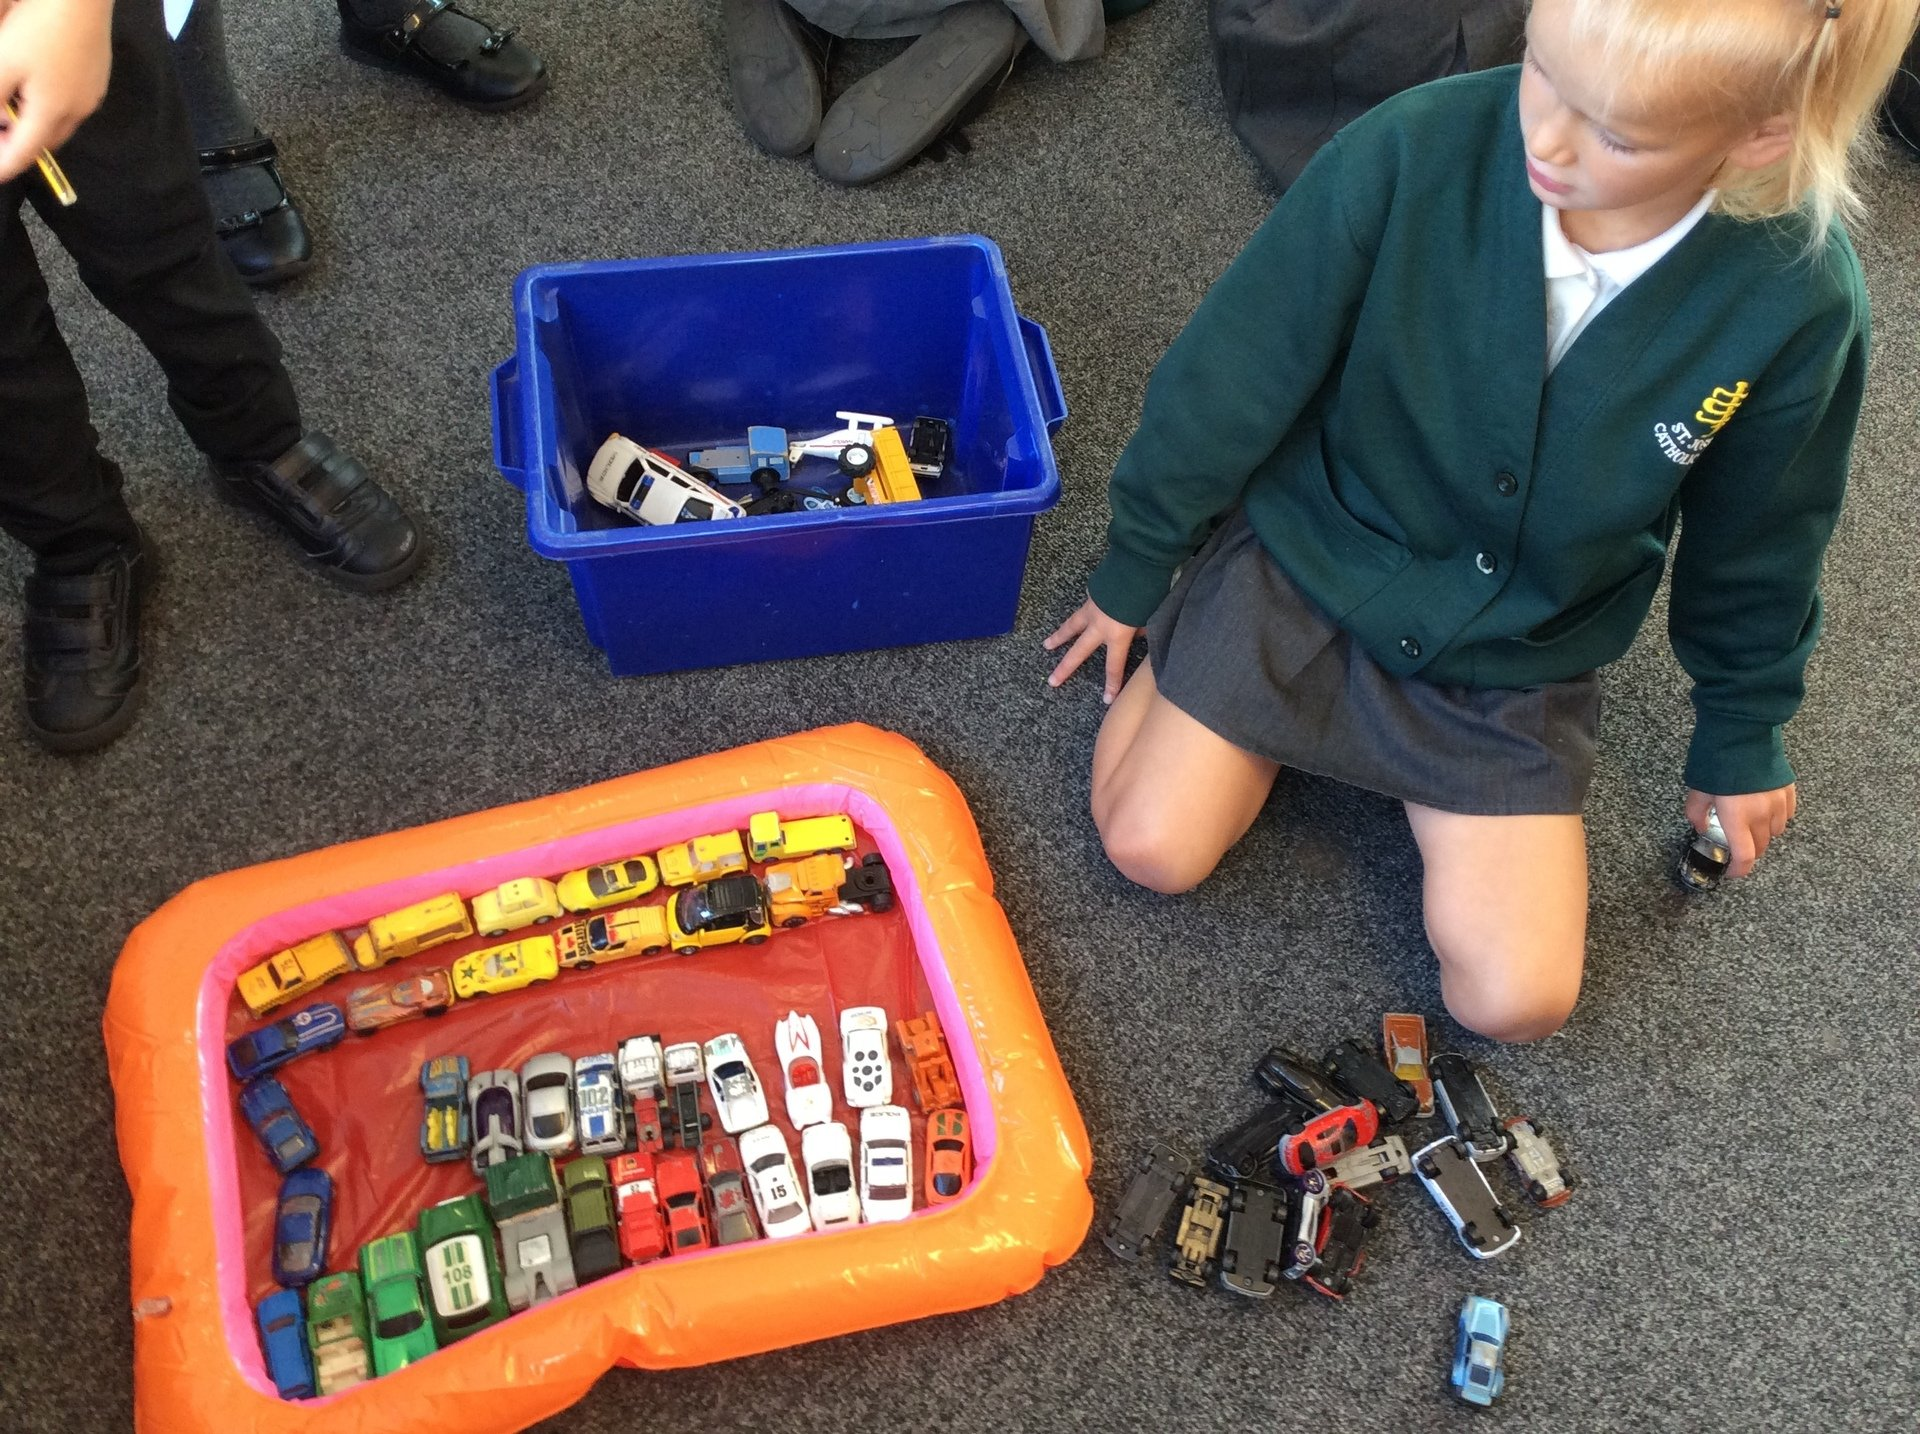 We have been sorting objects in our mathematics lesson.